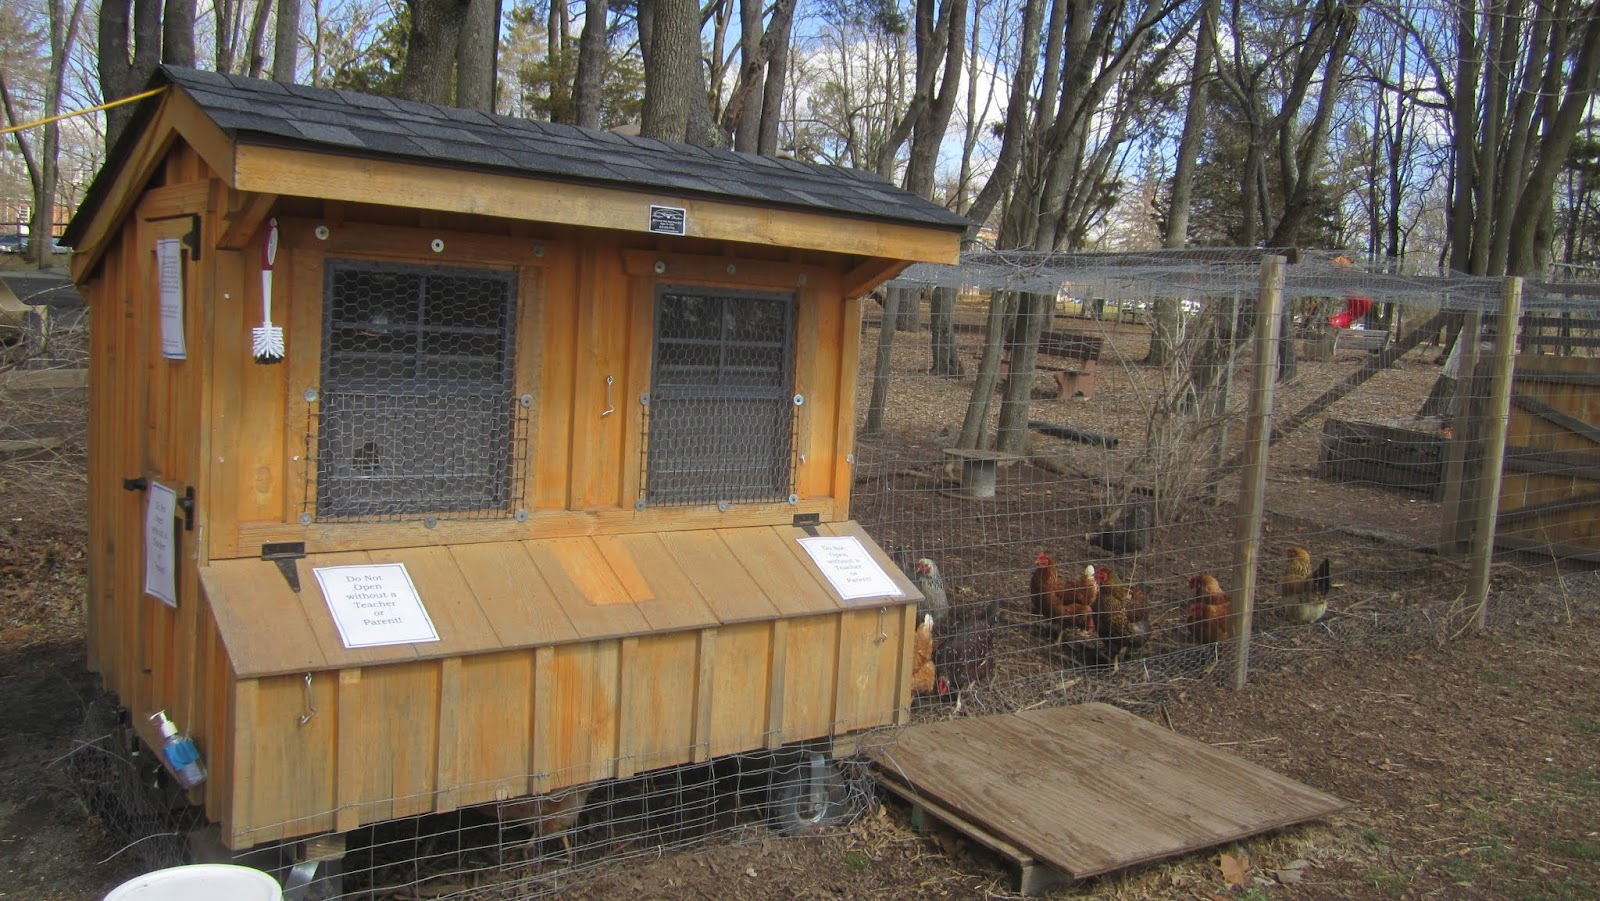 Chickens at Princeton Day School | Princeton Nature Notes